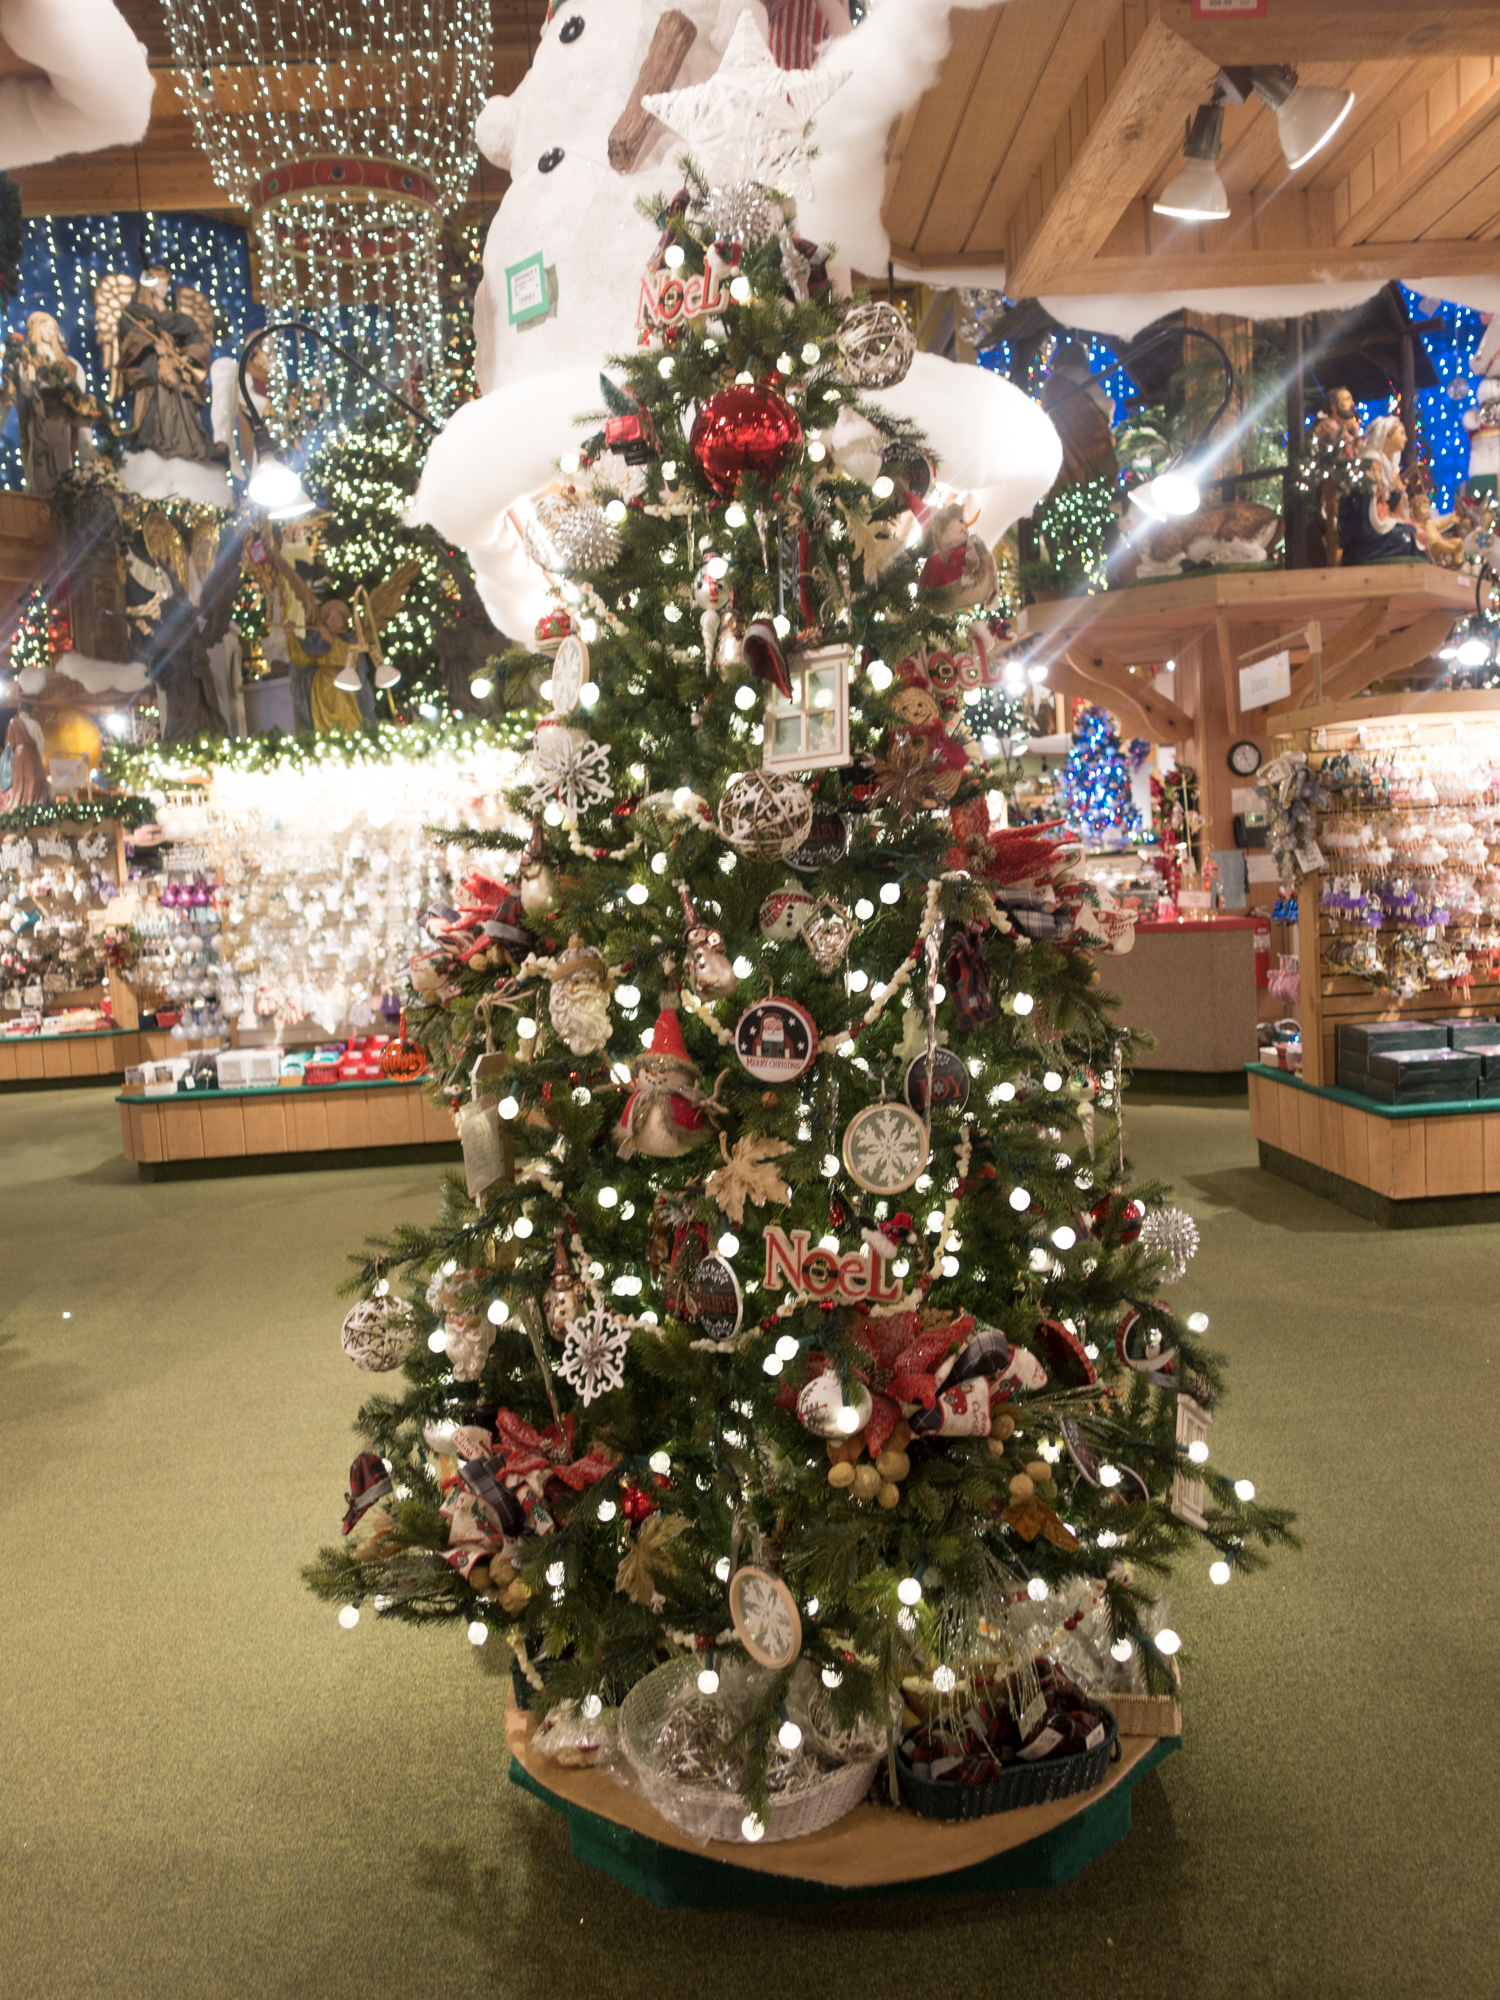 At Bronner's CHRISTmas Wonderland, you can experience Christmas year-round. This Guide to